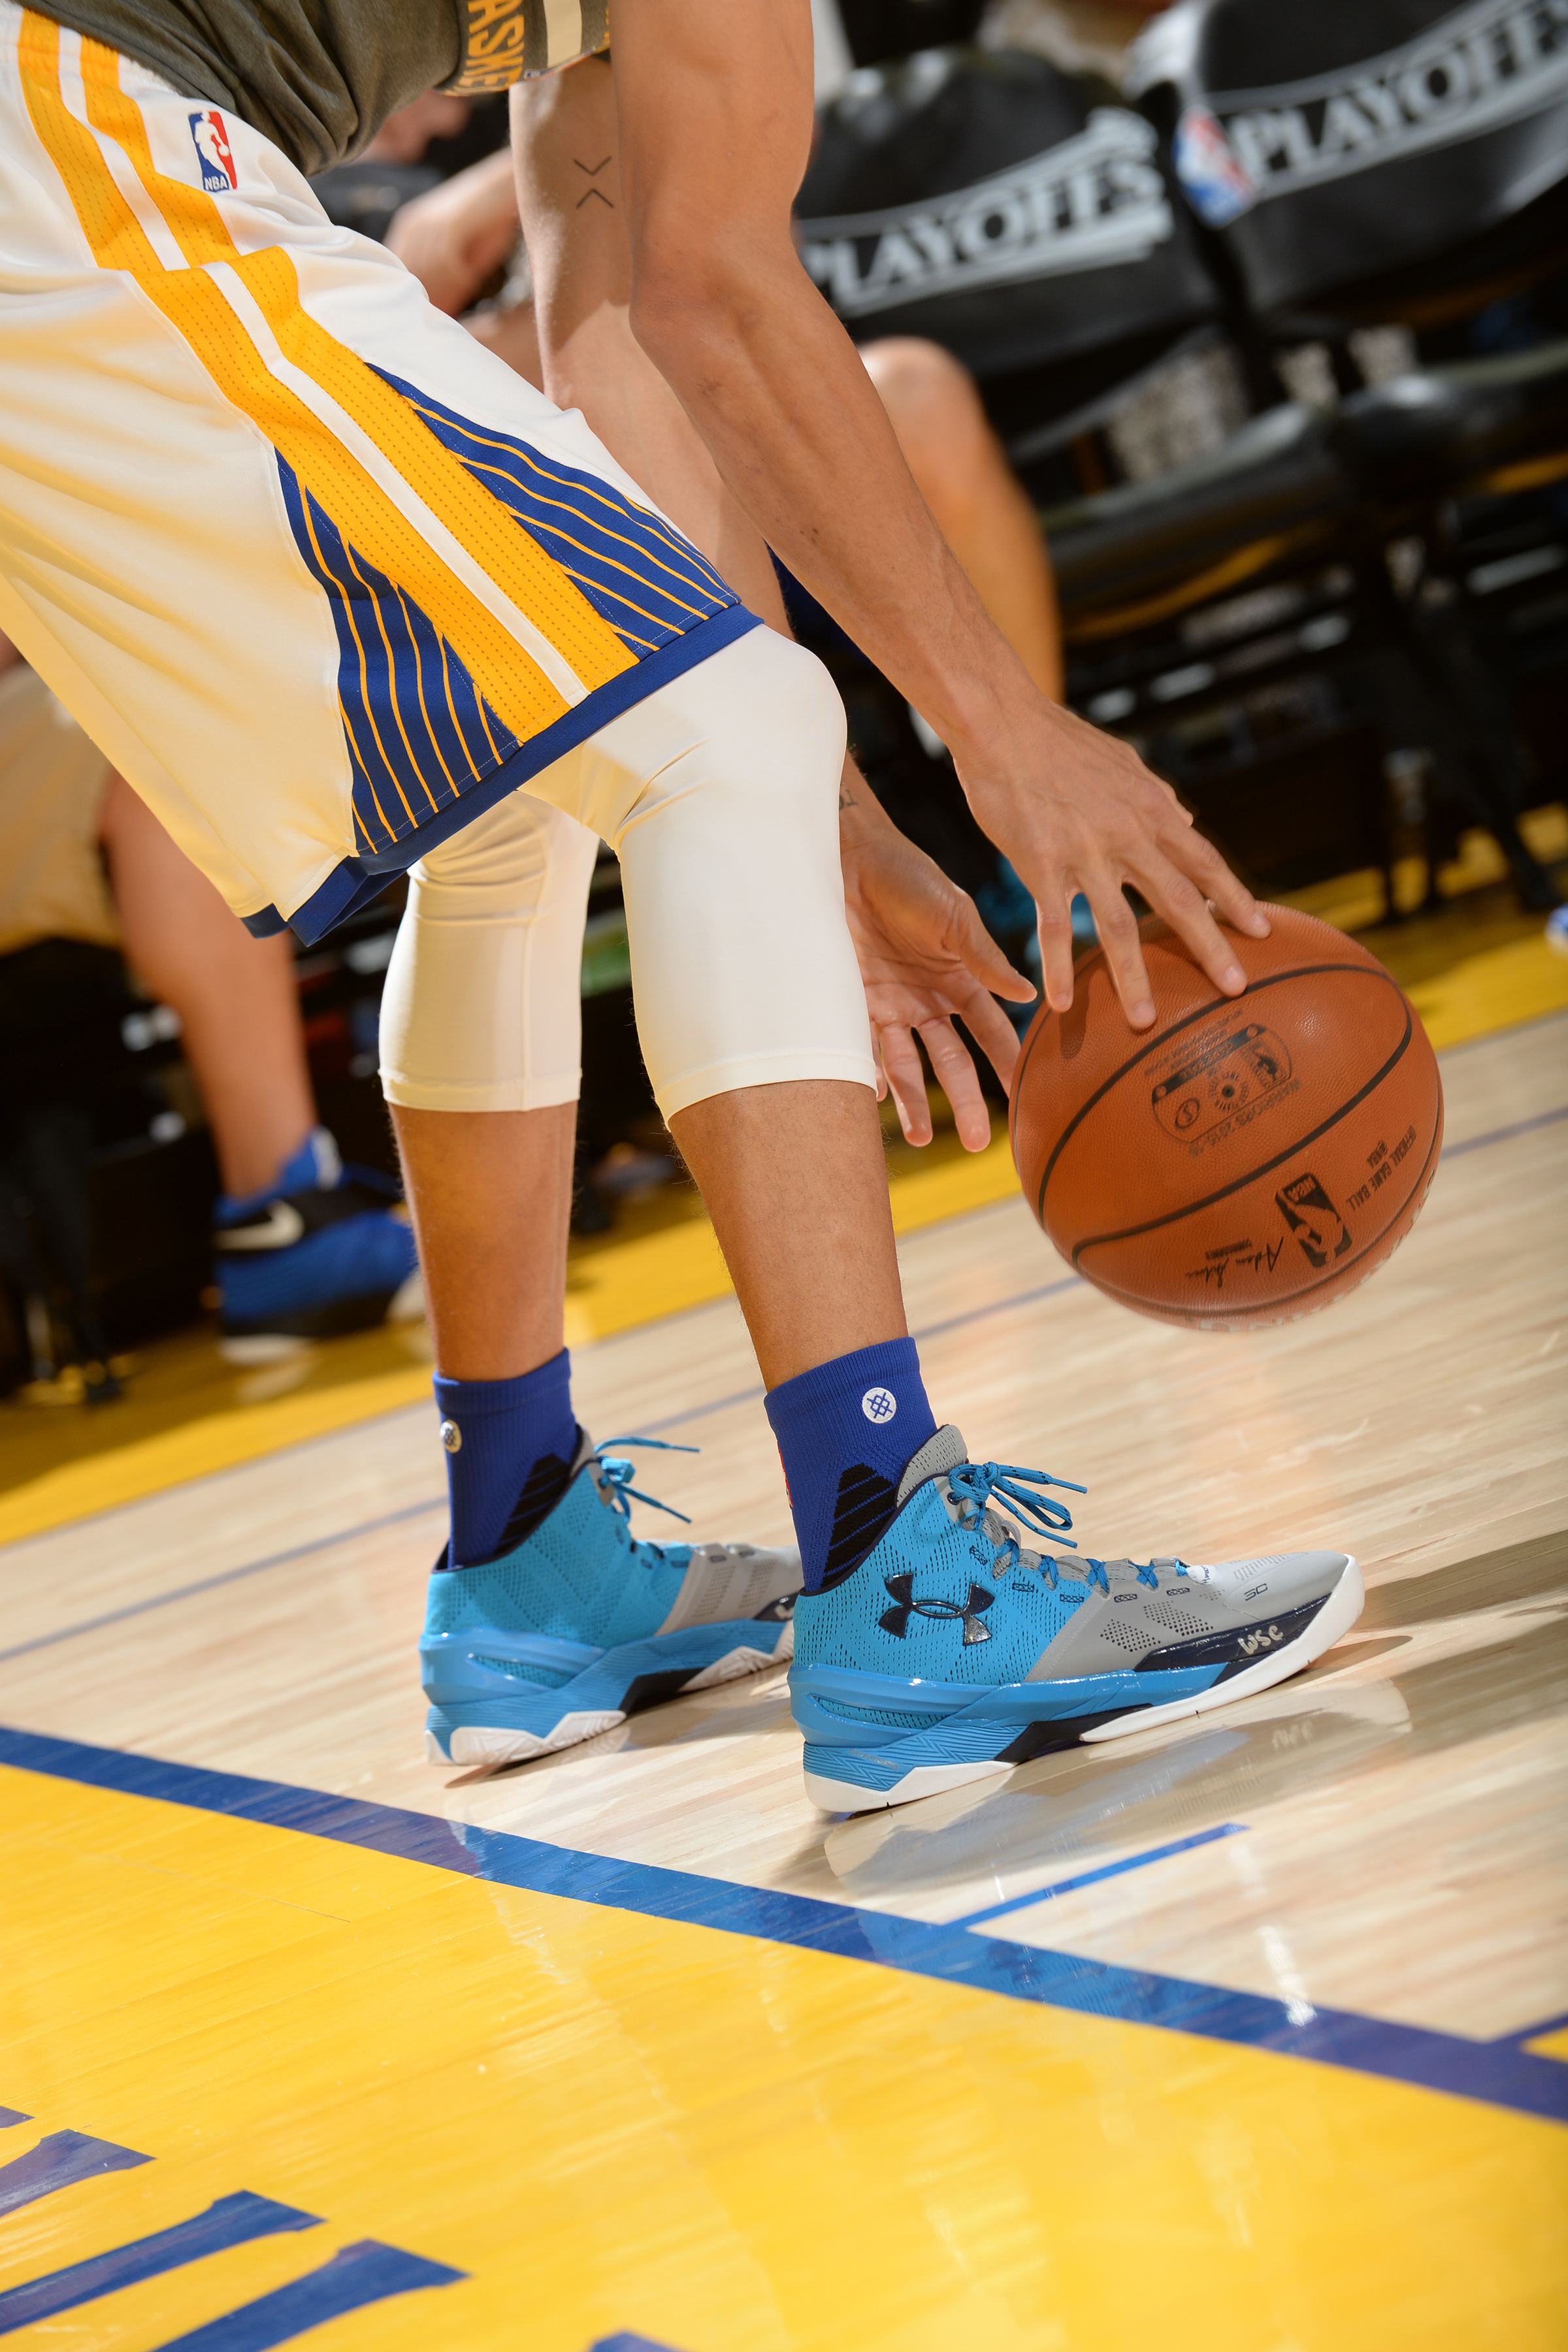 OAKLAND, CA - APRIL 18: The sneakers of Stephen Curry #30 of the Golden State Warriors before the game against the Houston Rockets in Game Two of the Western Conference Quarterfinals during the 2016 NBA Playoffs on April 18, 2016 at ORACLE Arena in Oakland, California. NOTE TO USER: User expressly acknowledges and agrees that, by downloading and or using this photograph, user is consenting to the terms and conditions of Getty Images License Agreement. Mandatory Copyright Notice: Copyright 2016 NBAE   Noah Graham/NBAE via Getty Images/AFP